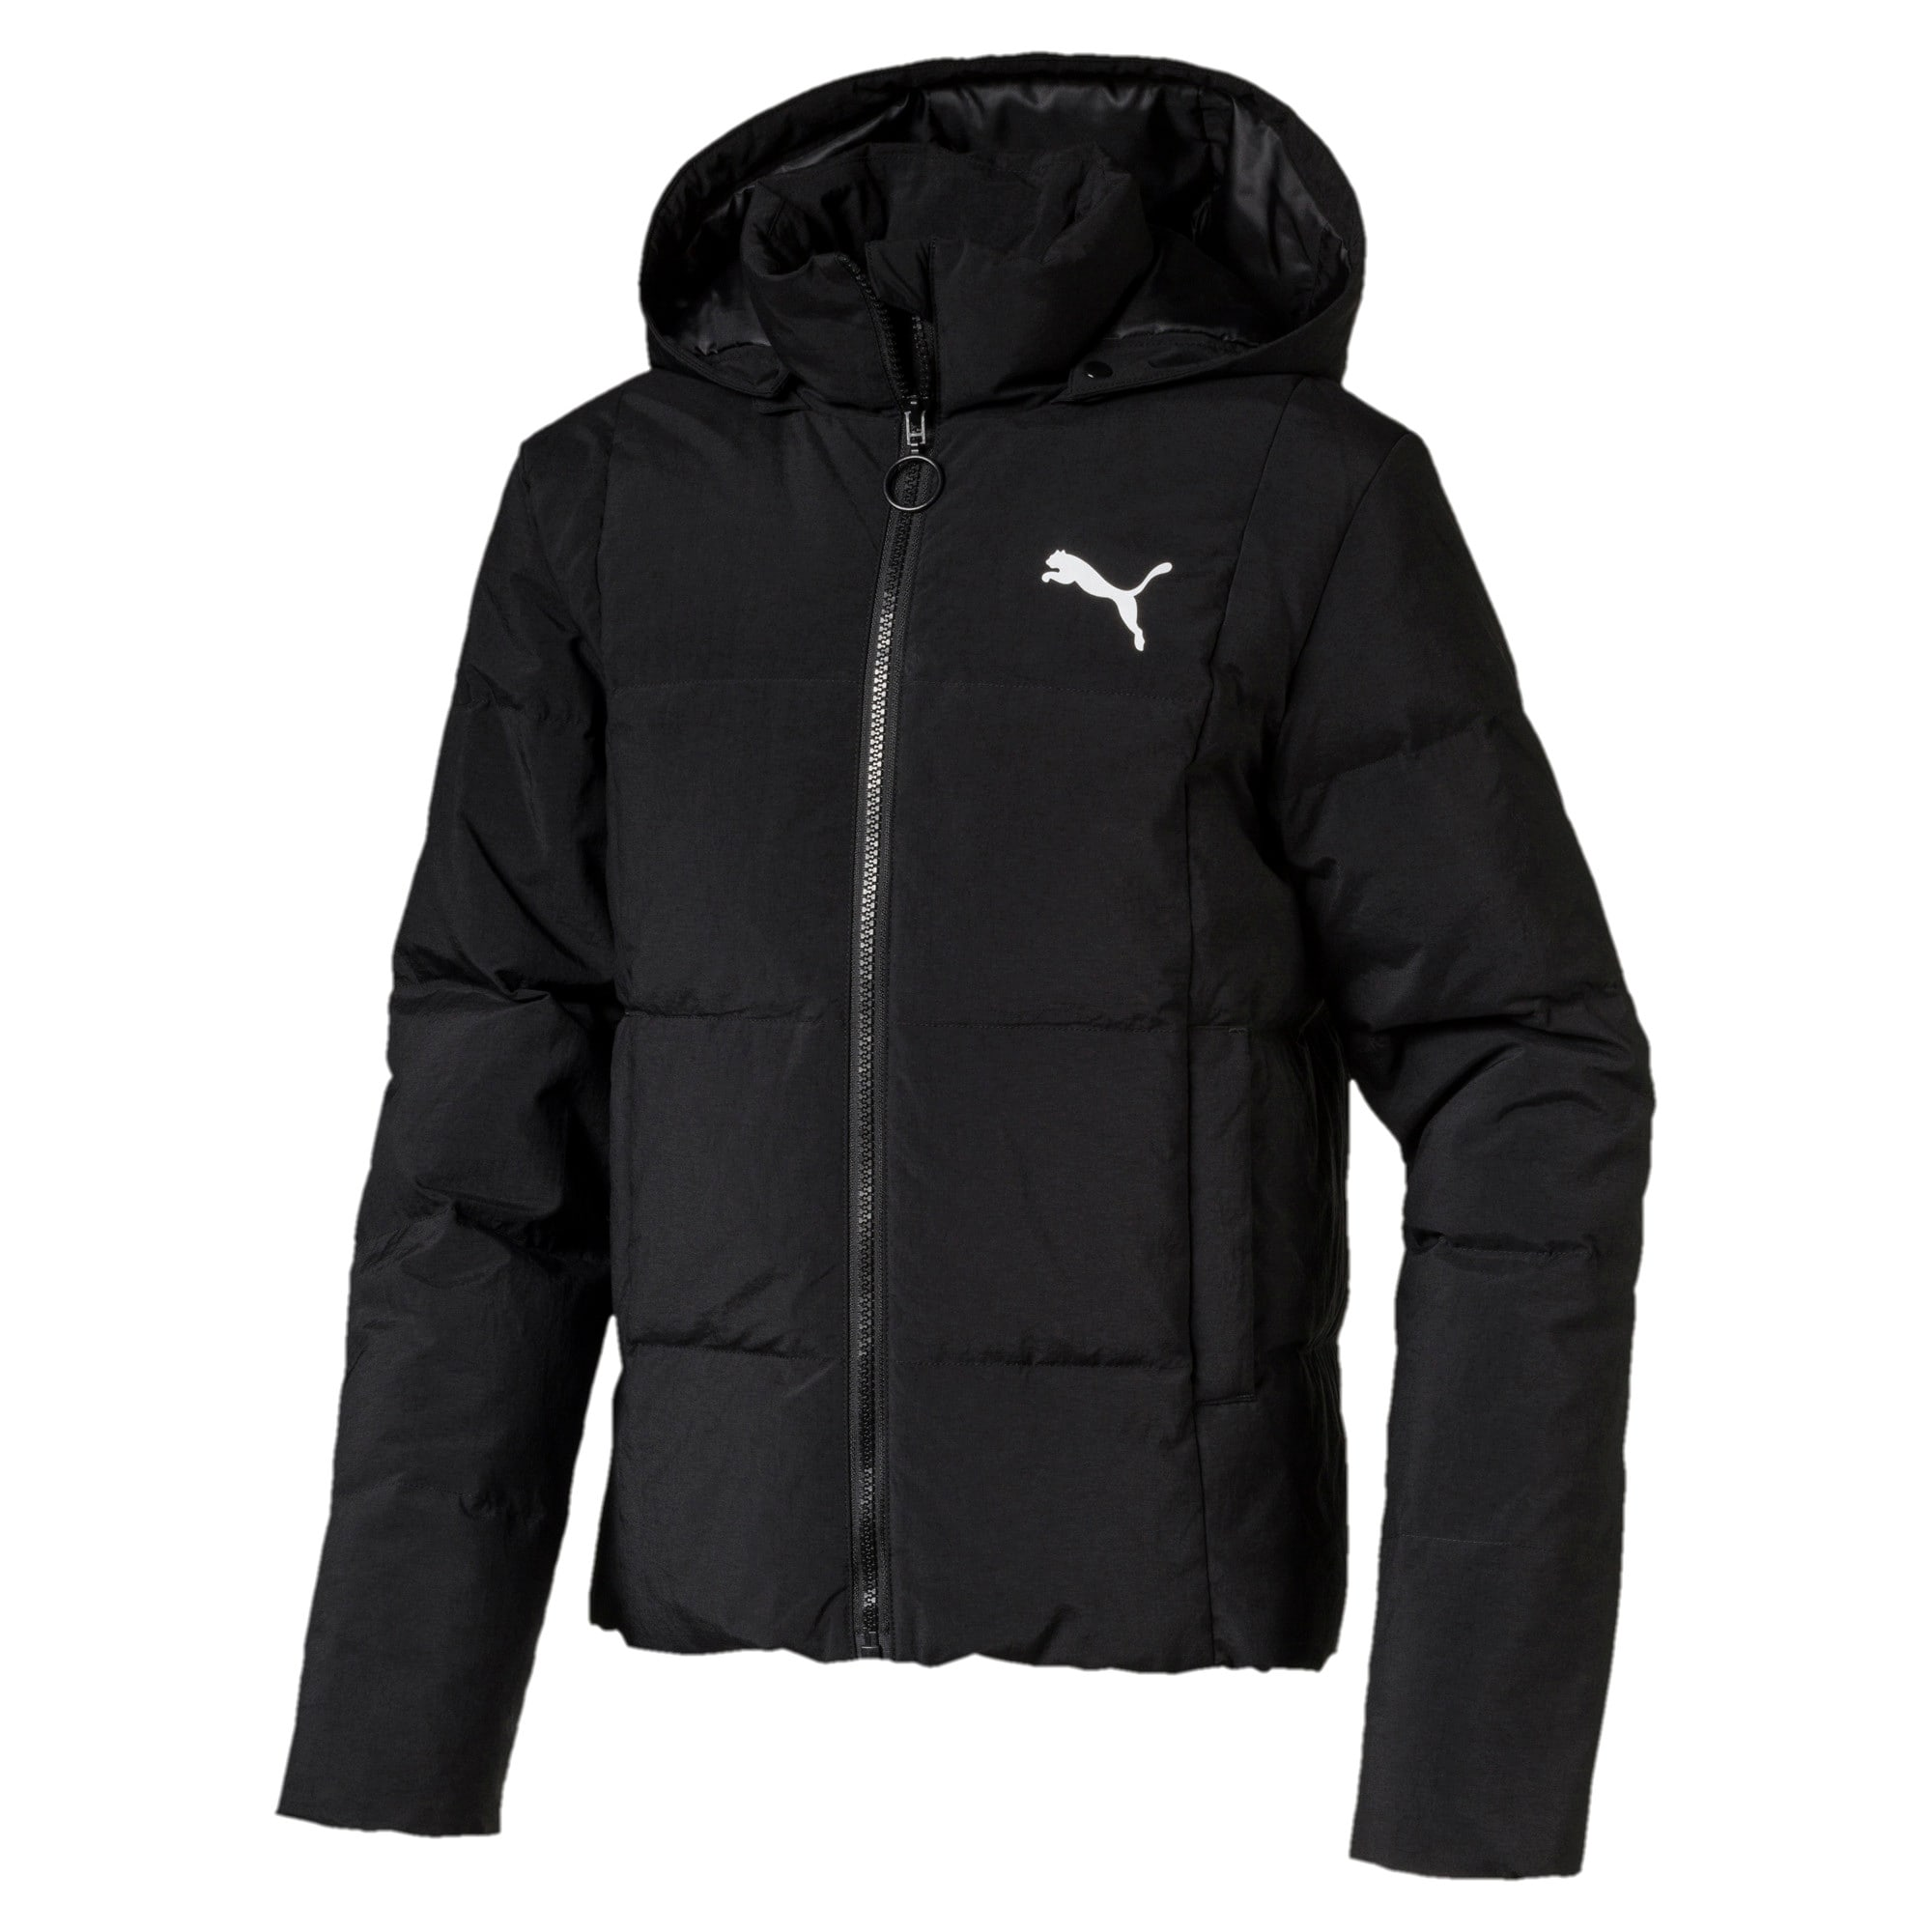 Thumbnail 1 of Style Jungen Daunenjacke, Puma Black, medium